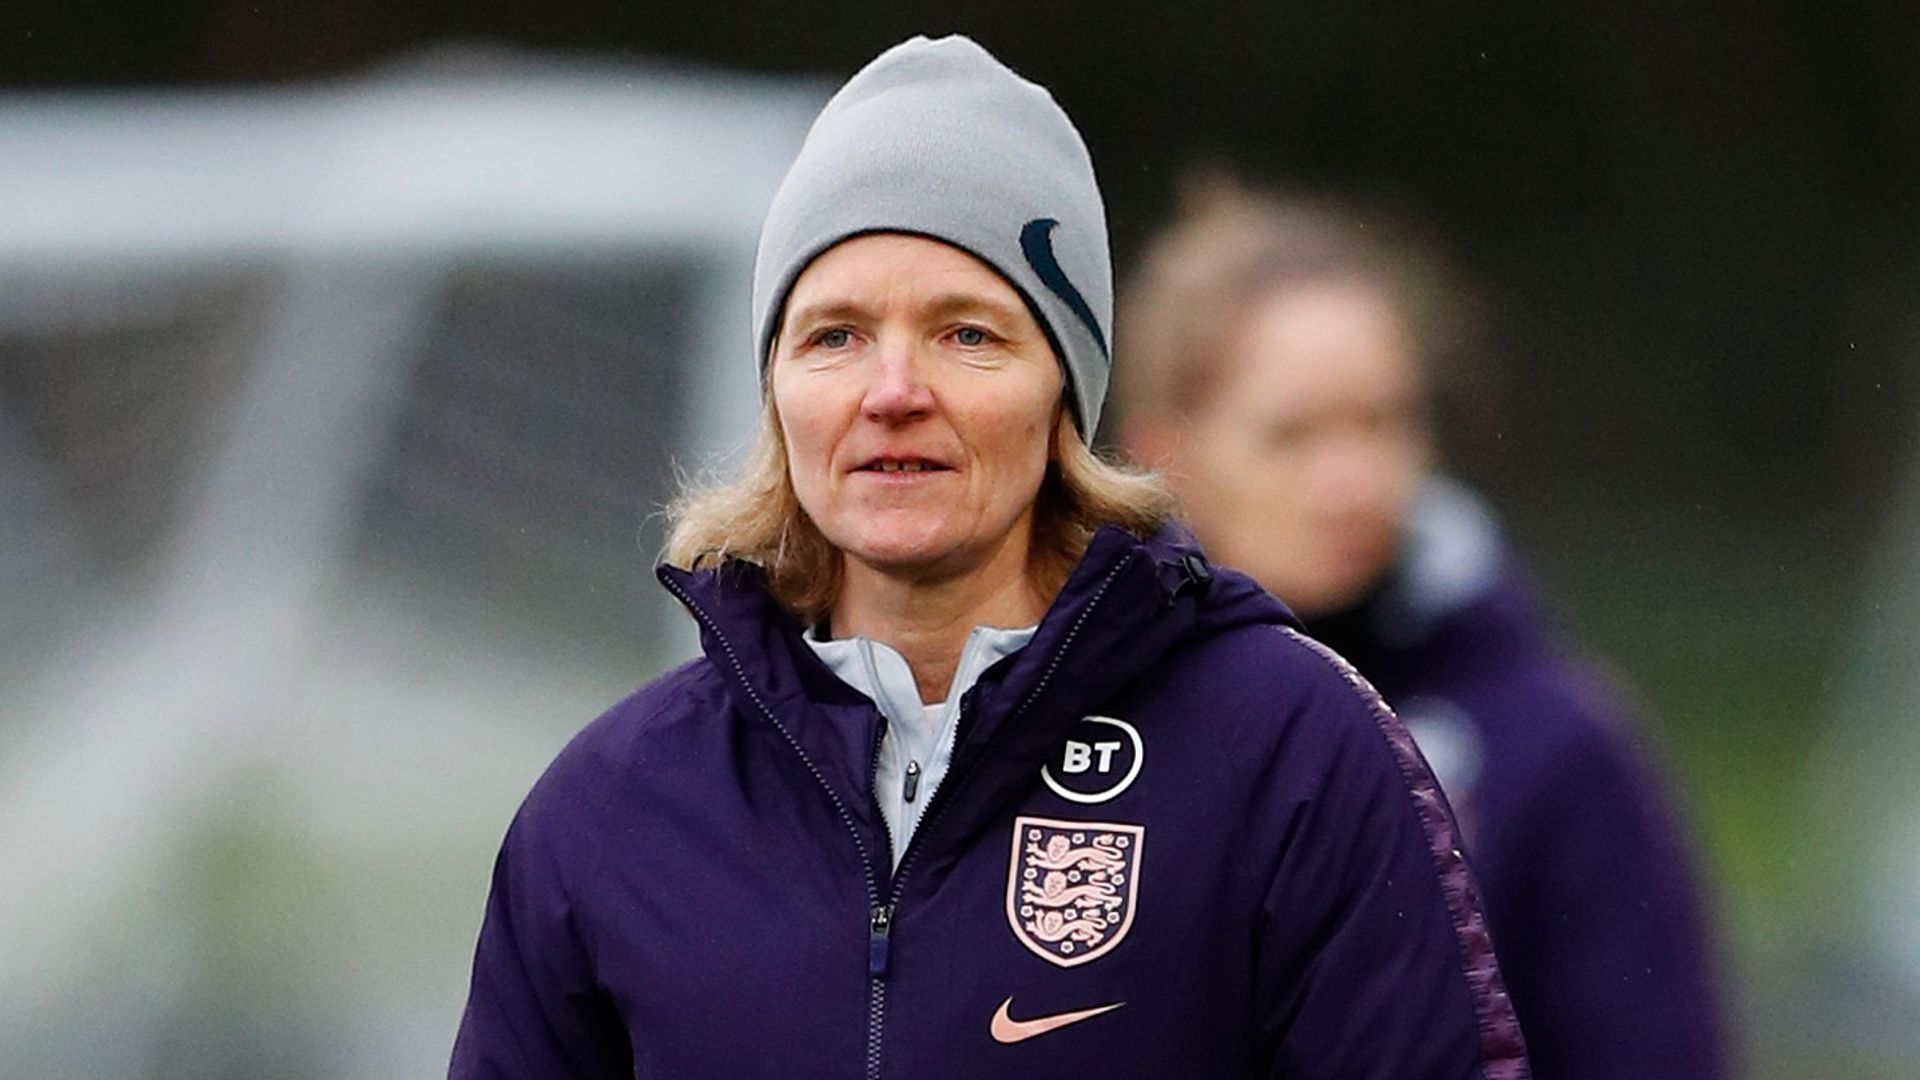 Riise to be named Team GB women's head coach for Olympics